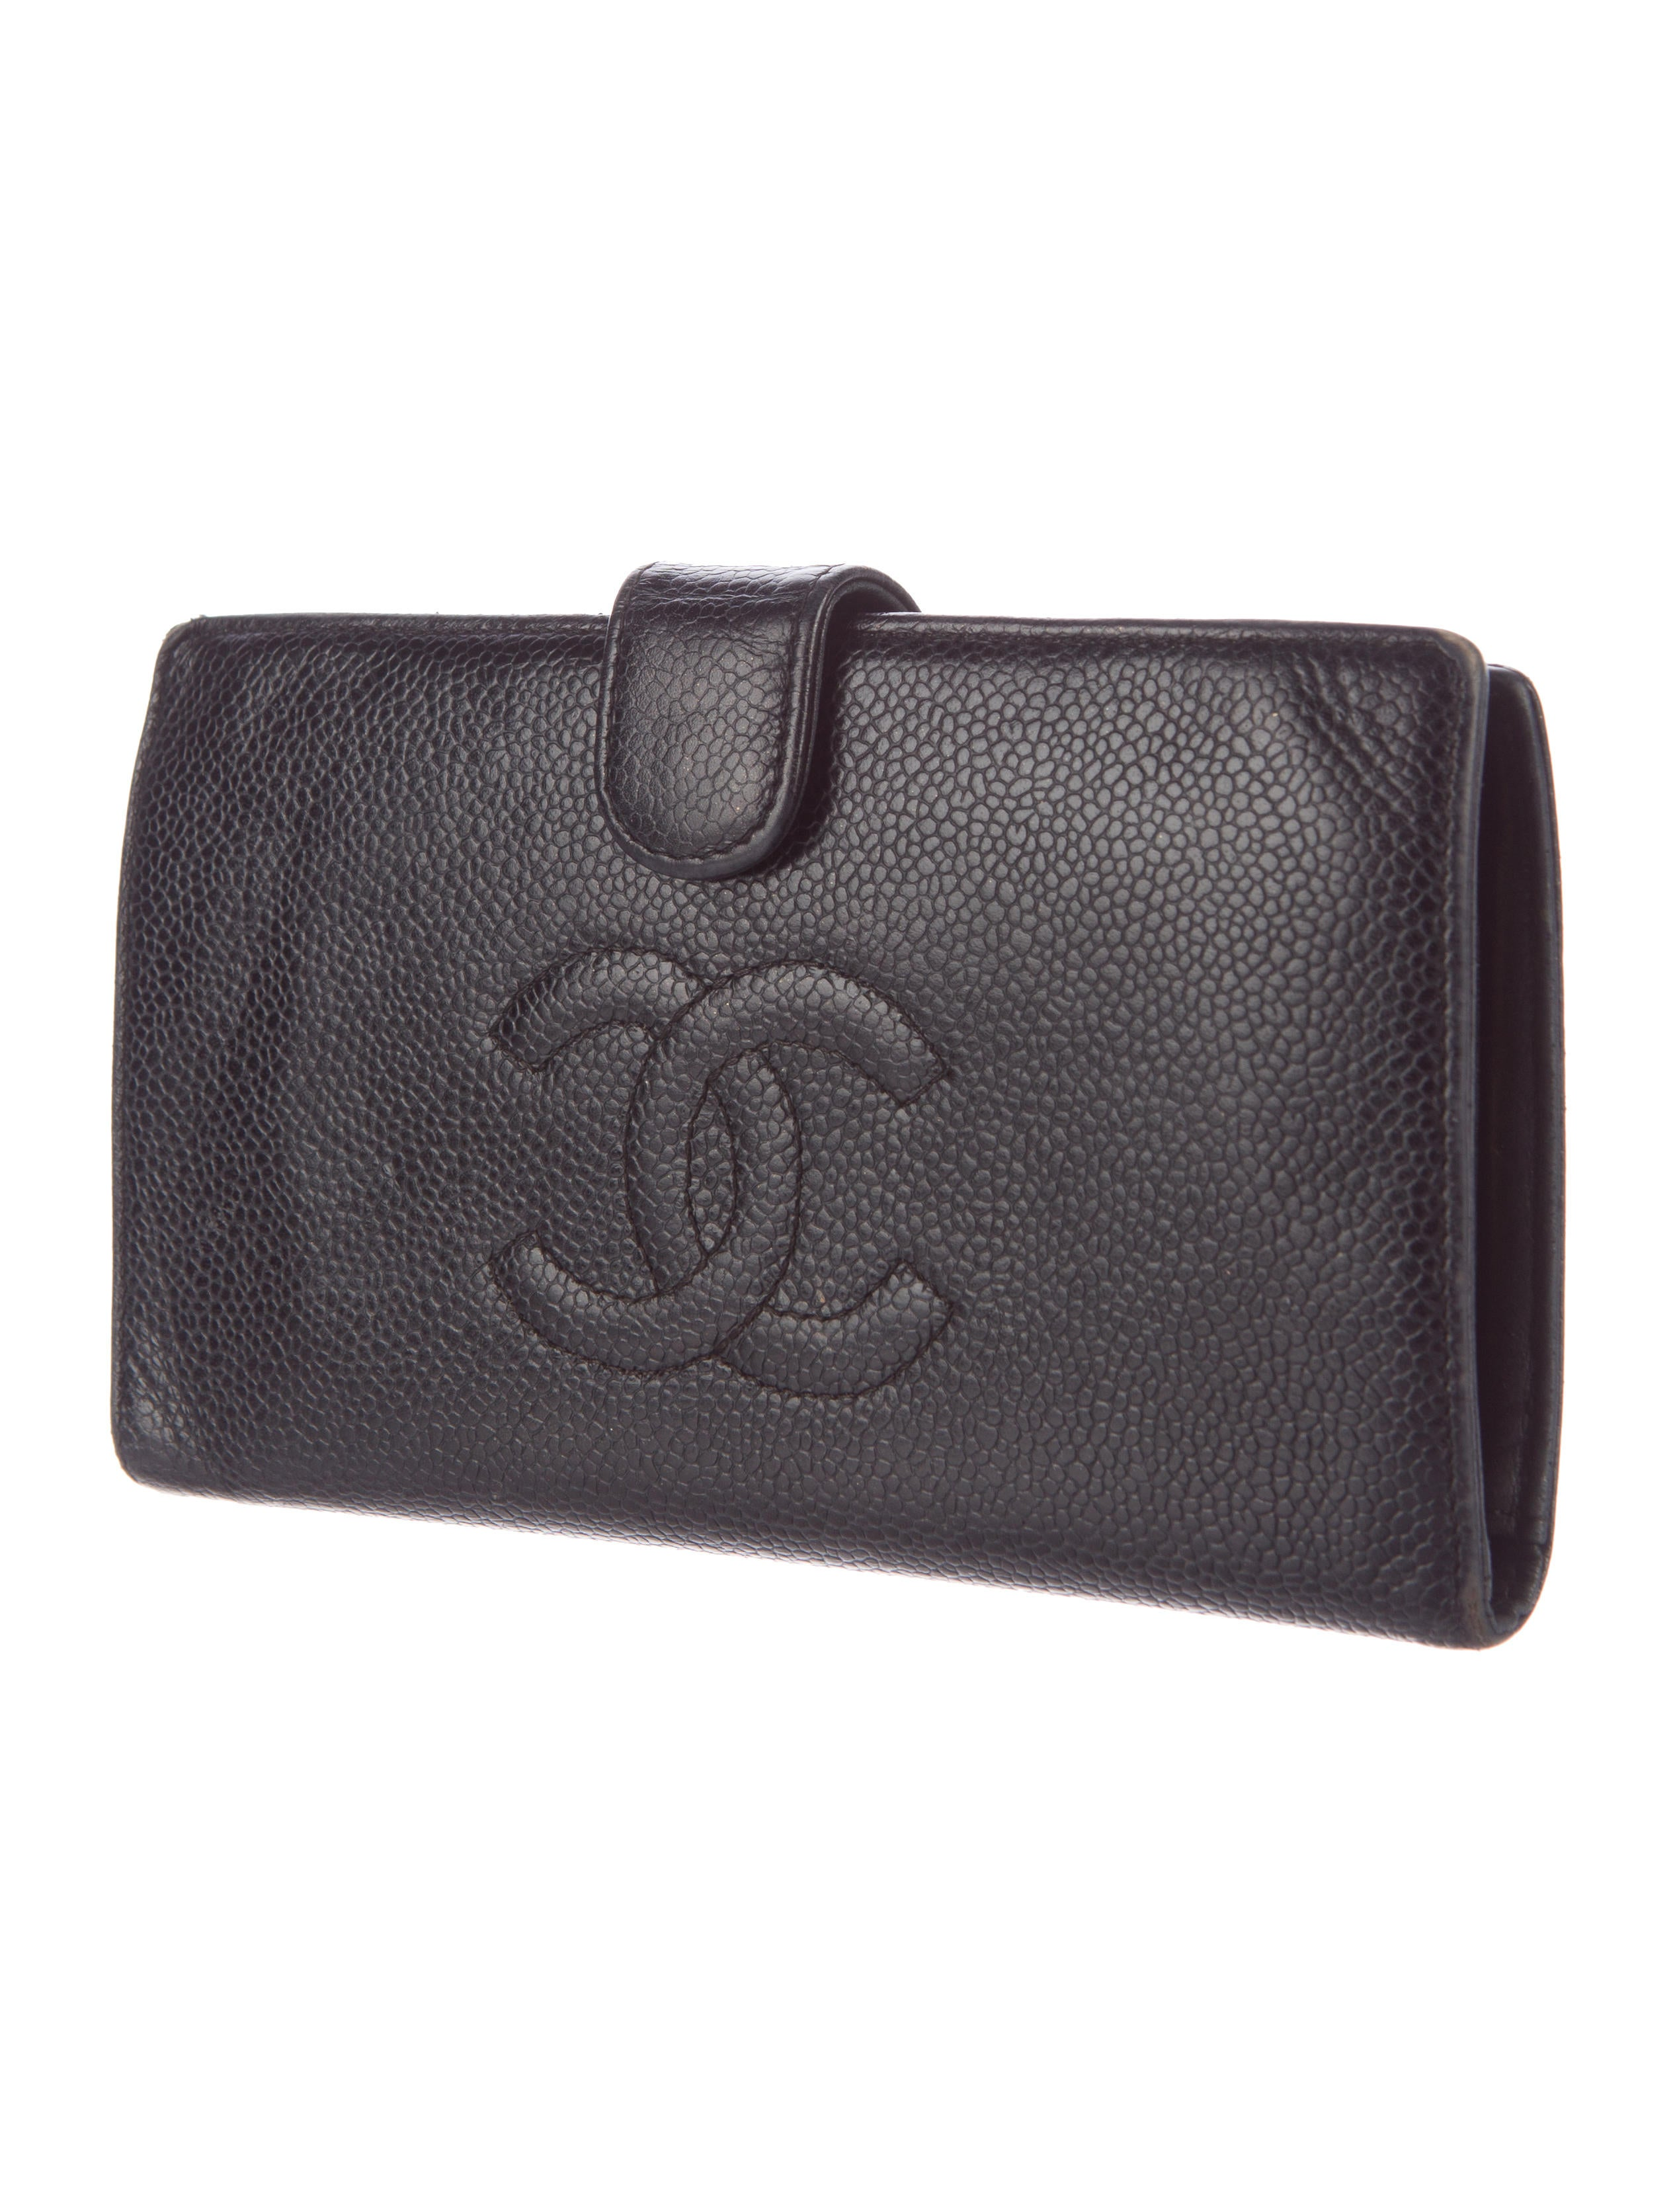 bbc9de011898 Chanel Timeless French Purse Wallet | Stanford Center for ...